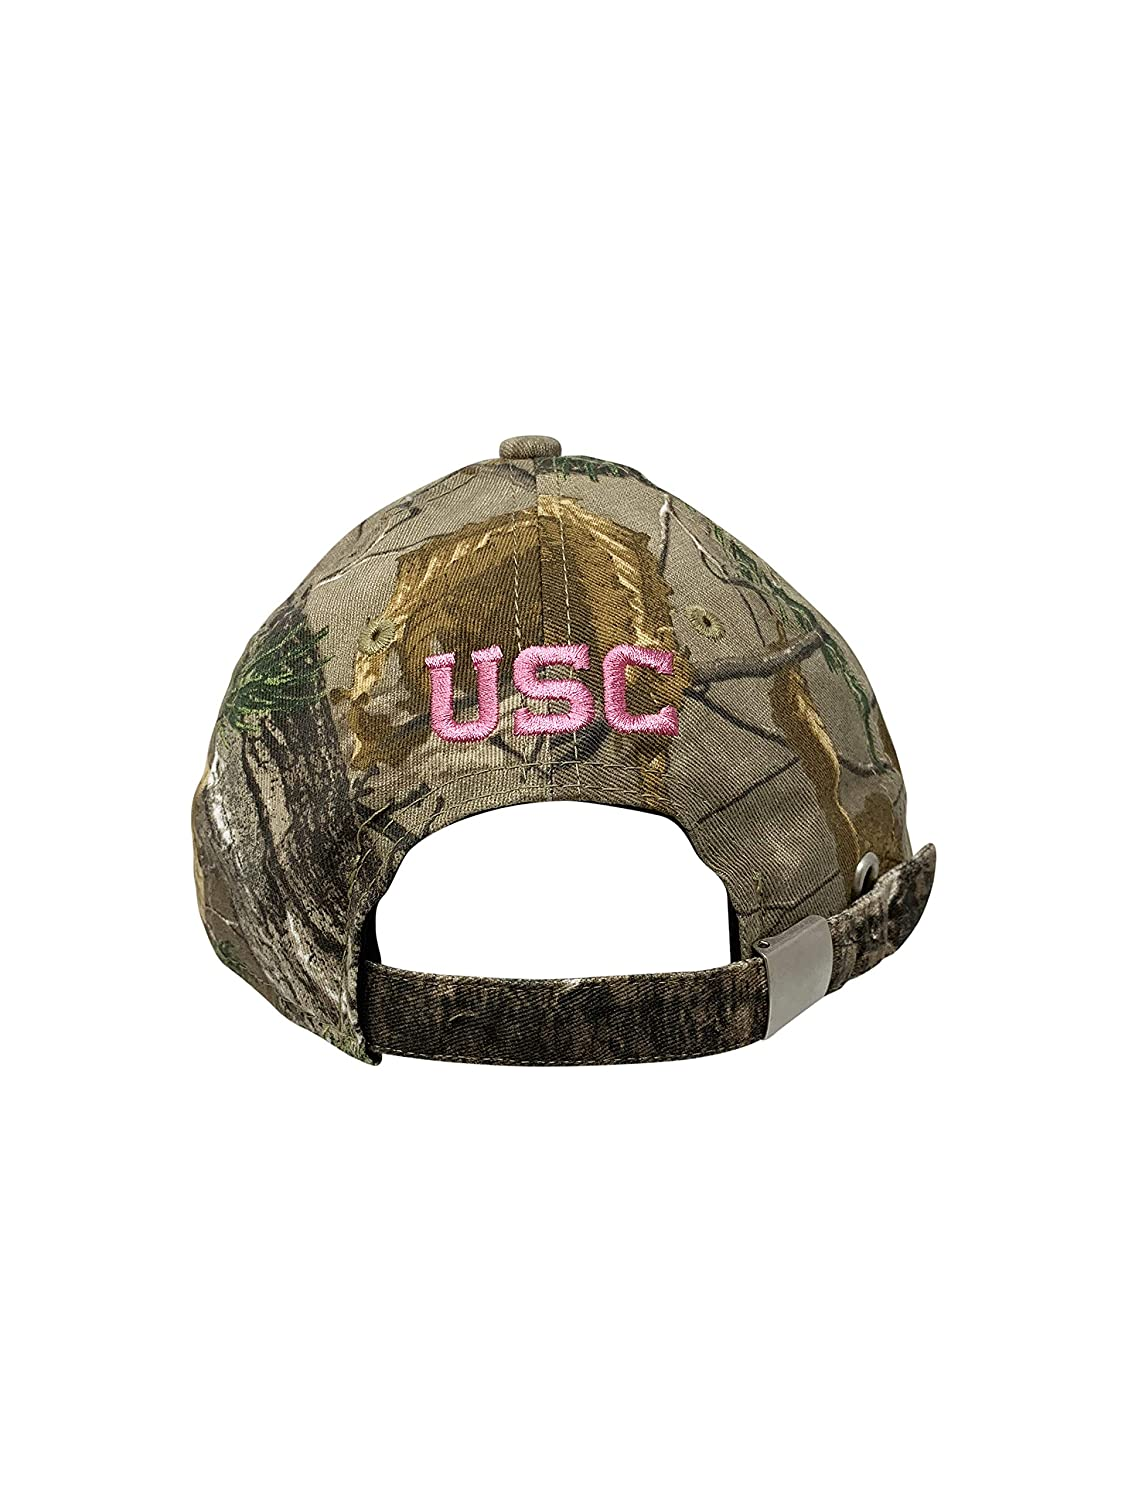 New Era USC Trojans NCAA Womens Metallic Glitter Baseball Caps 9Twenty Low Profile Strapback Cap 950 One Size Adjustable